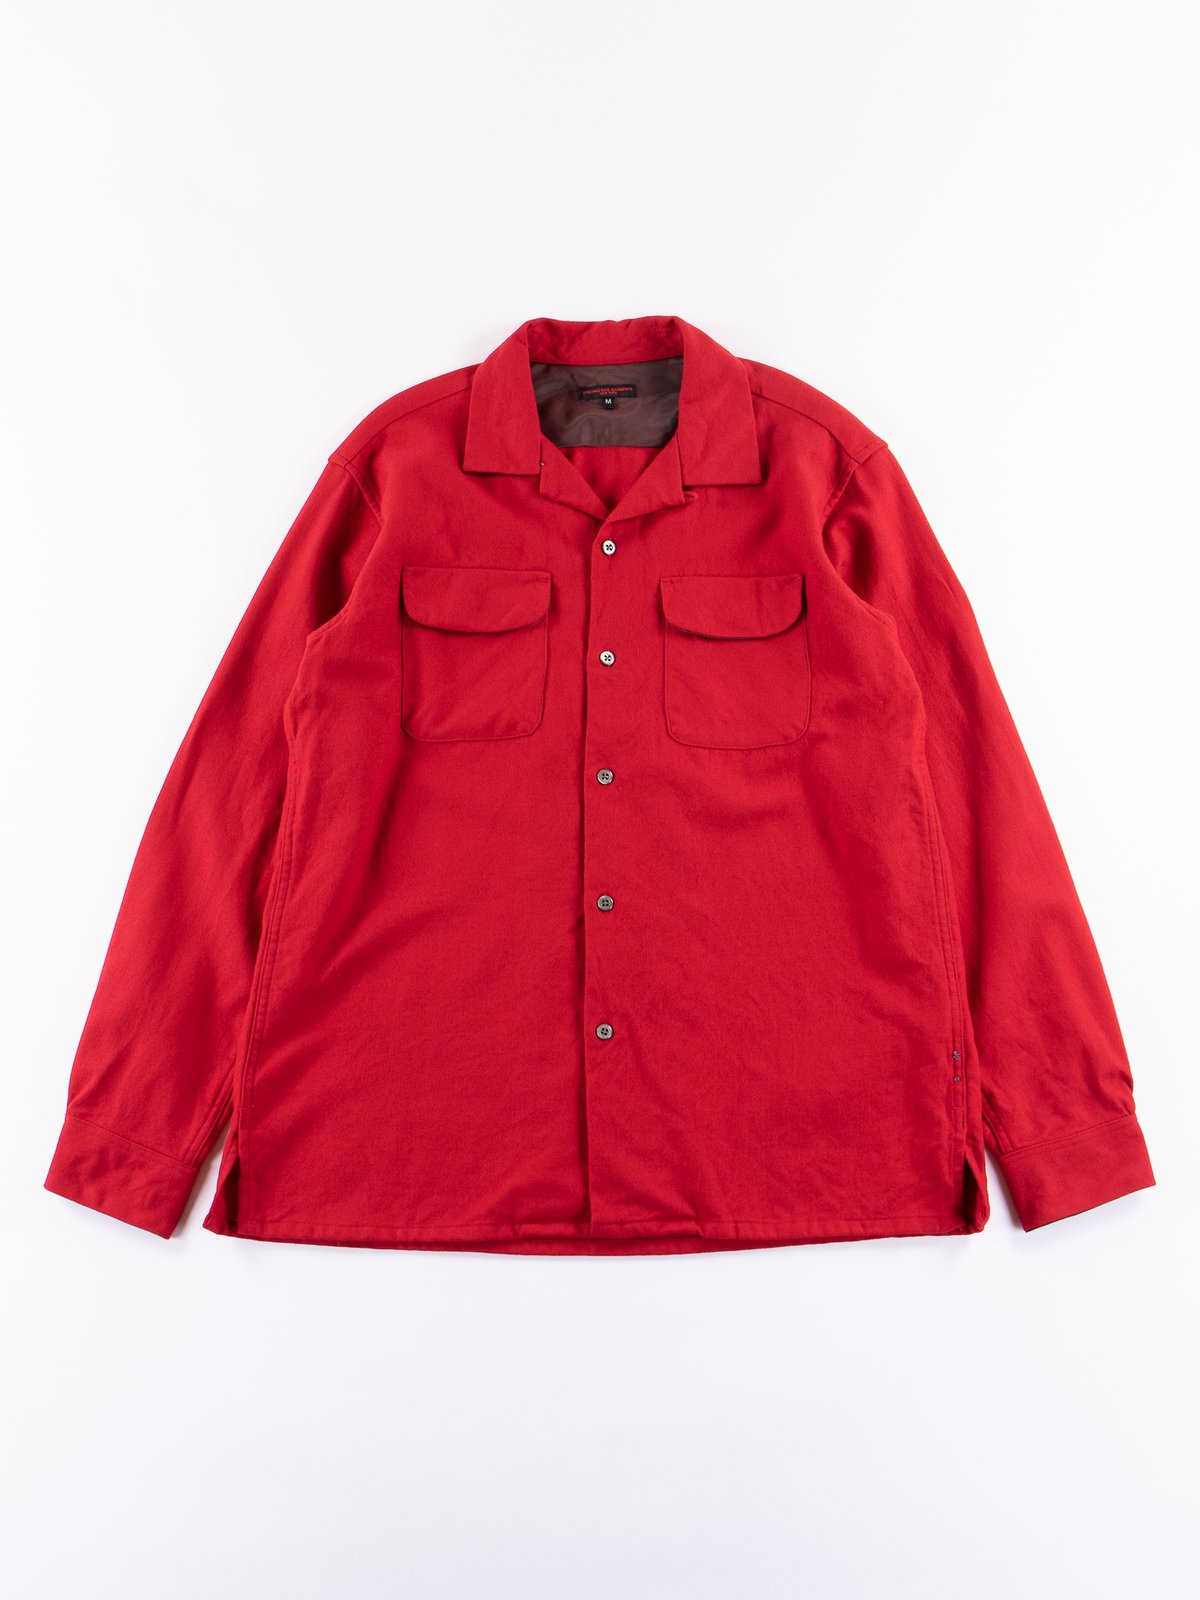 Red Worsted Wool Flannel Classic Shirt - Image 1